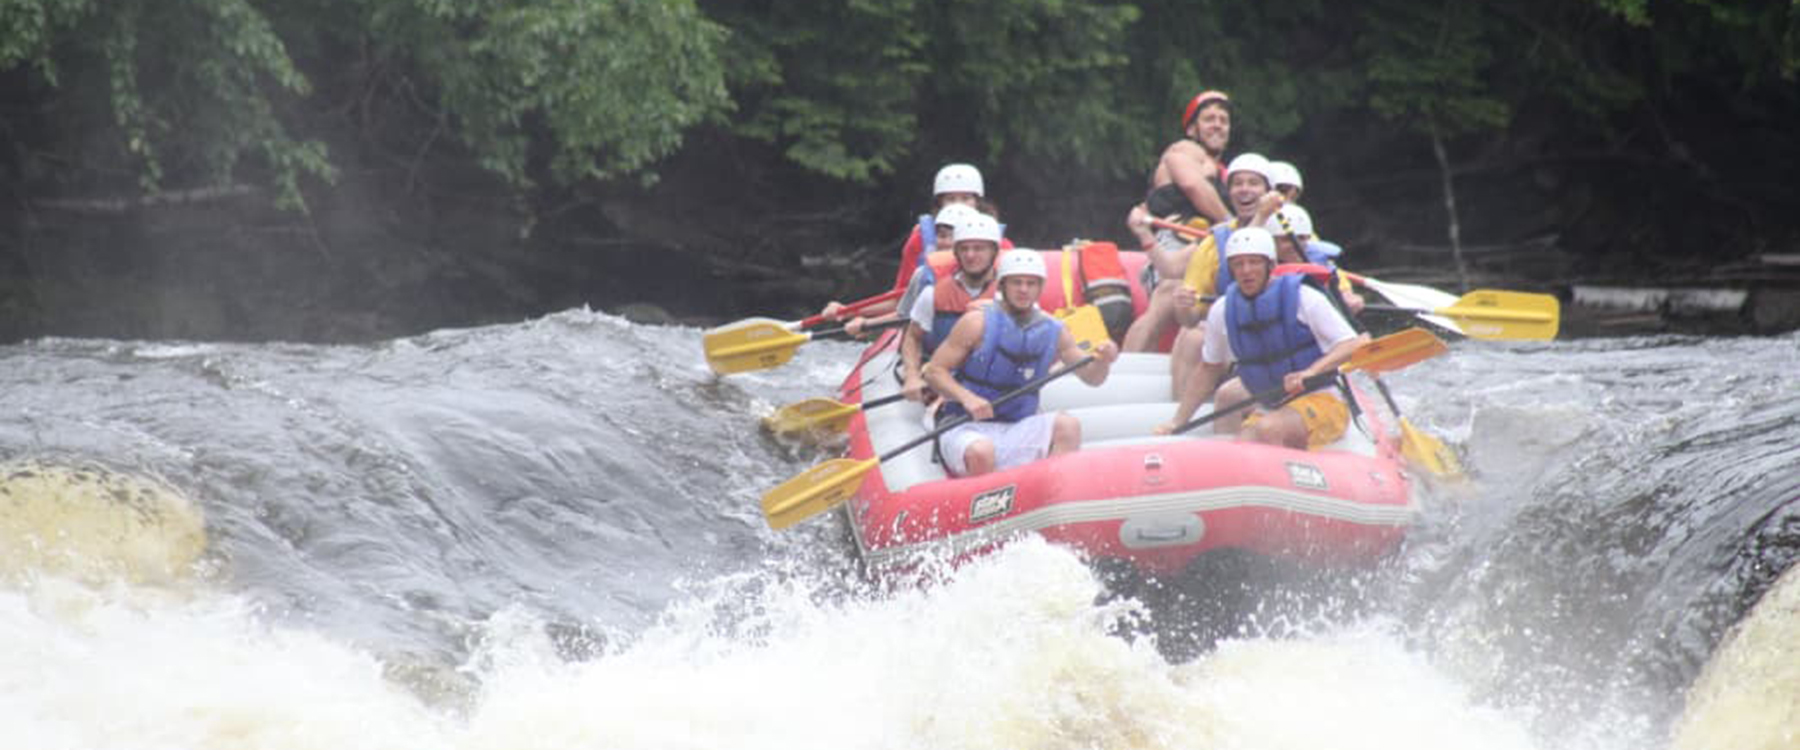 whitewater rafting in the midwest